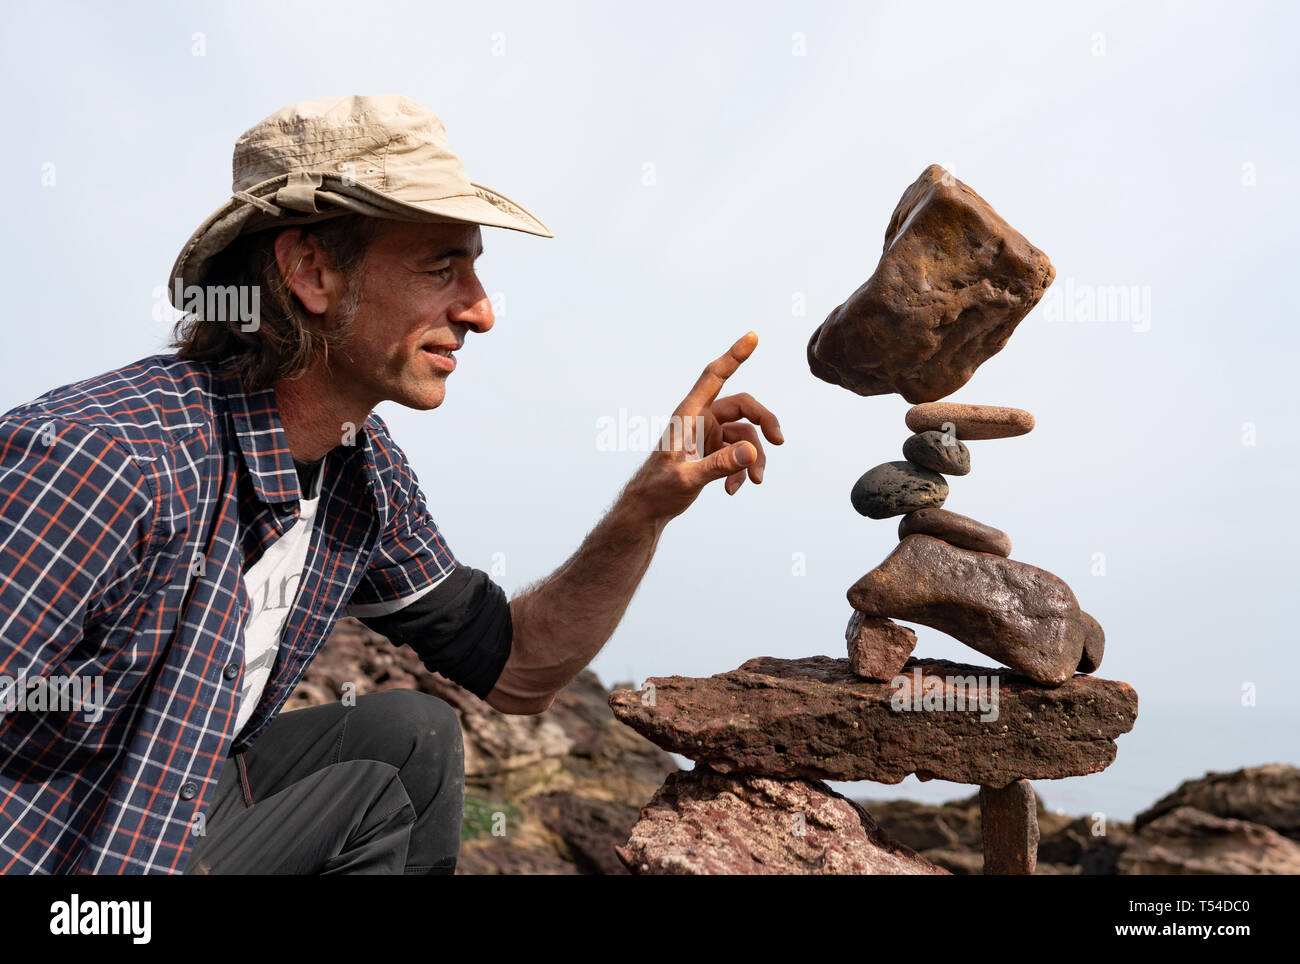 Dunbar, Scotland, UK. 20th Apr, 2019. Pedro Duran examines his sculpture on Eye Cave beach in Dunbar during opening day of the European Stone Stacking Championship 2019. Credit: Iain Masterton/Alamy Live News - Stock Image